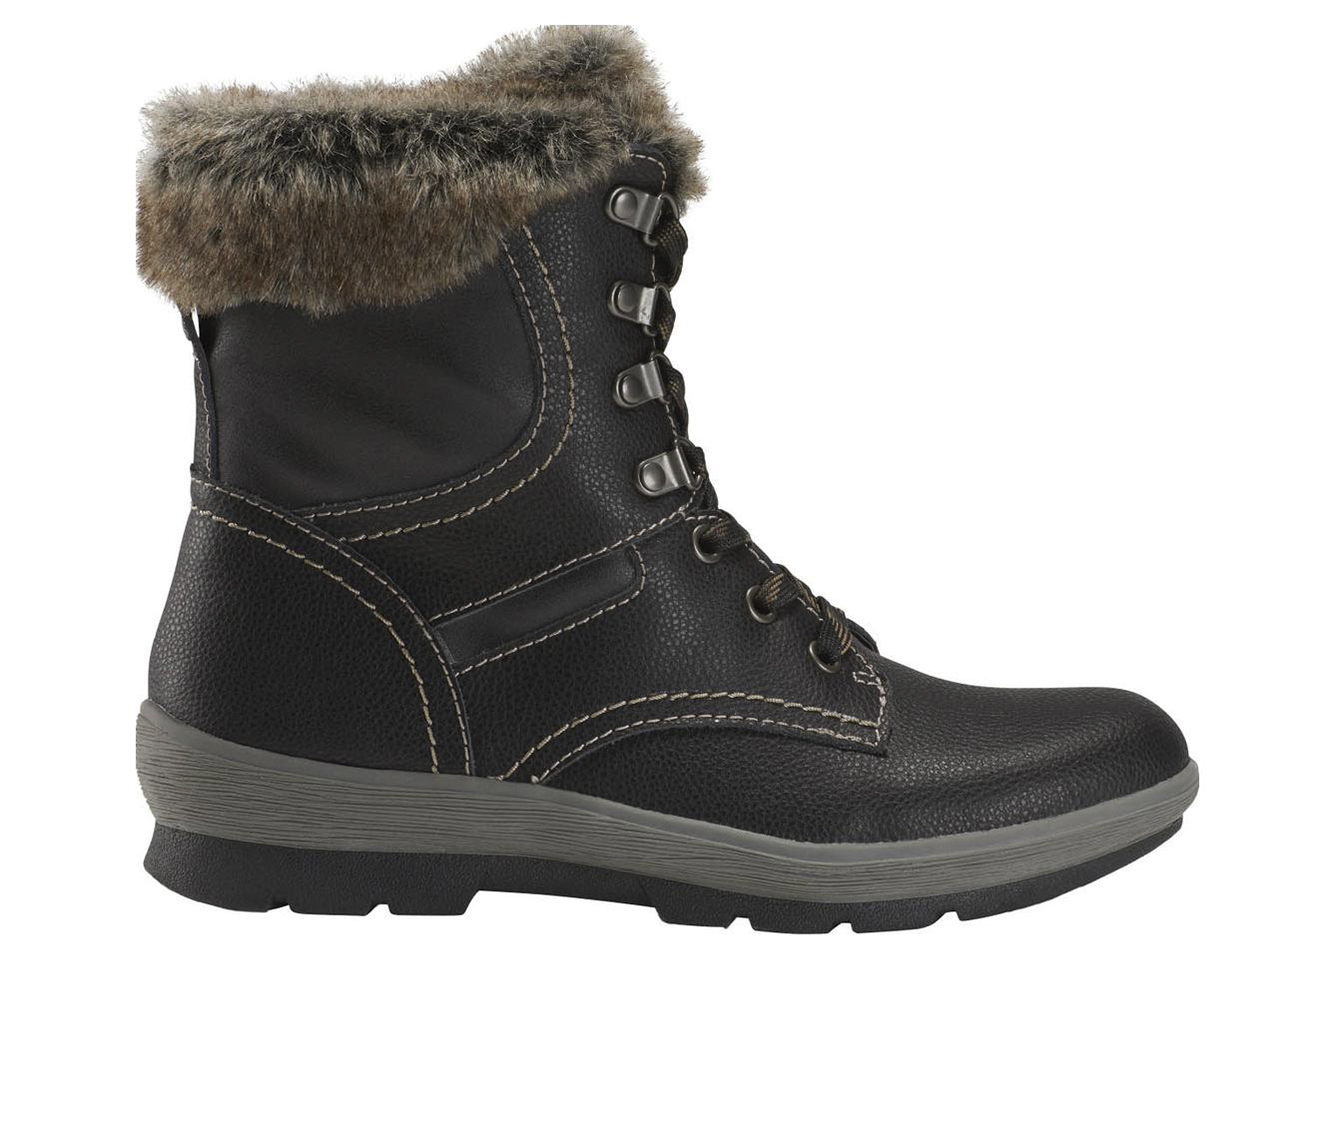 Earth Origins Sherpa Serenity Women's Boot (Black Leather)